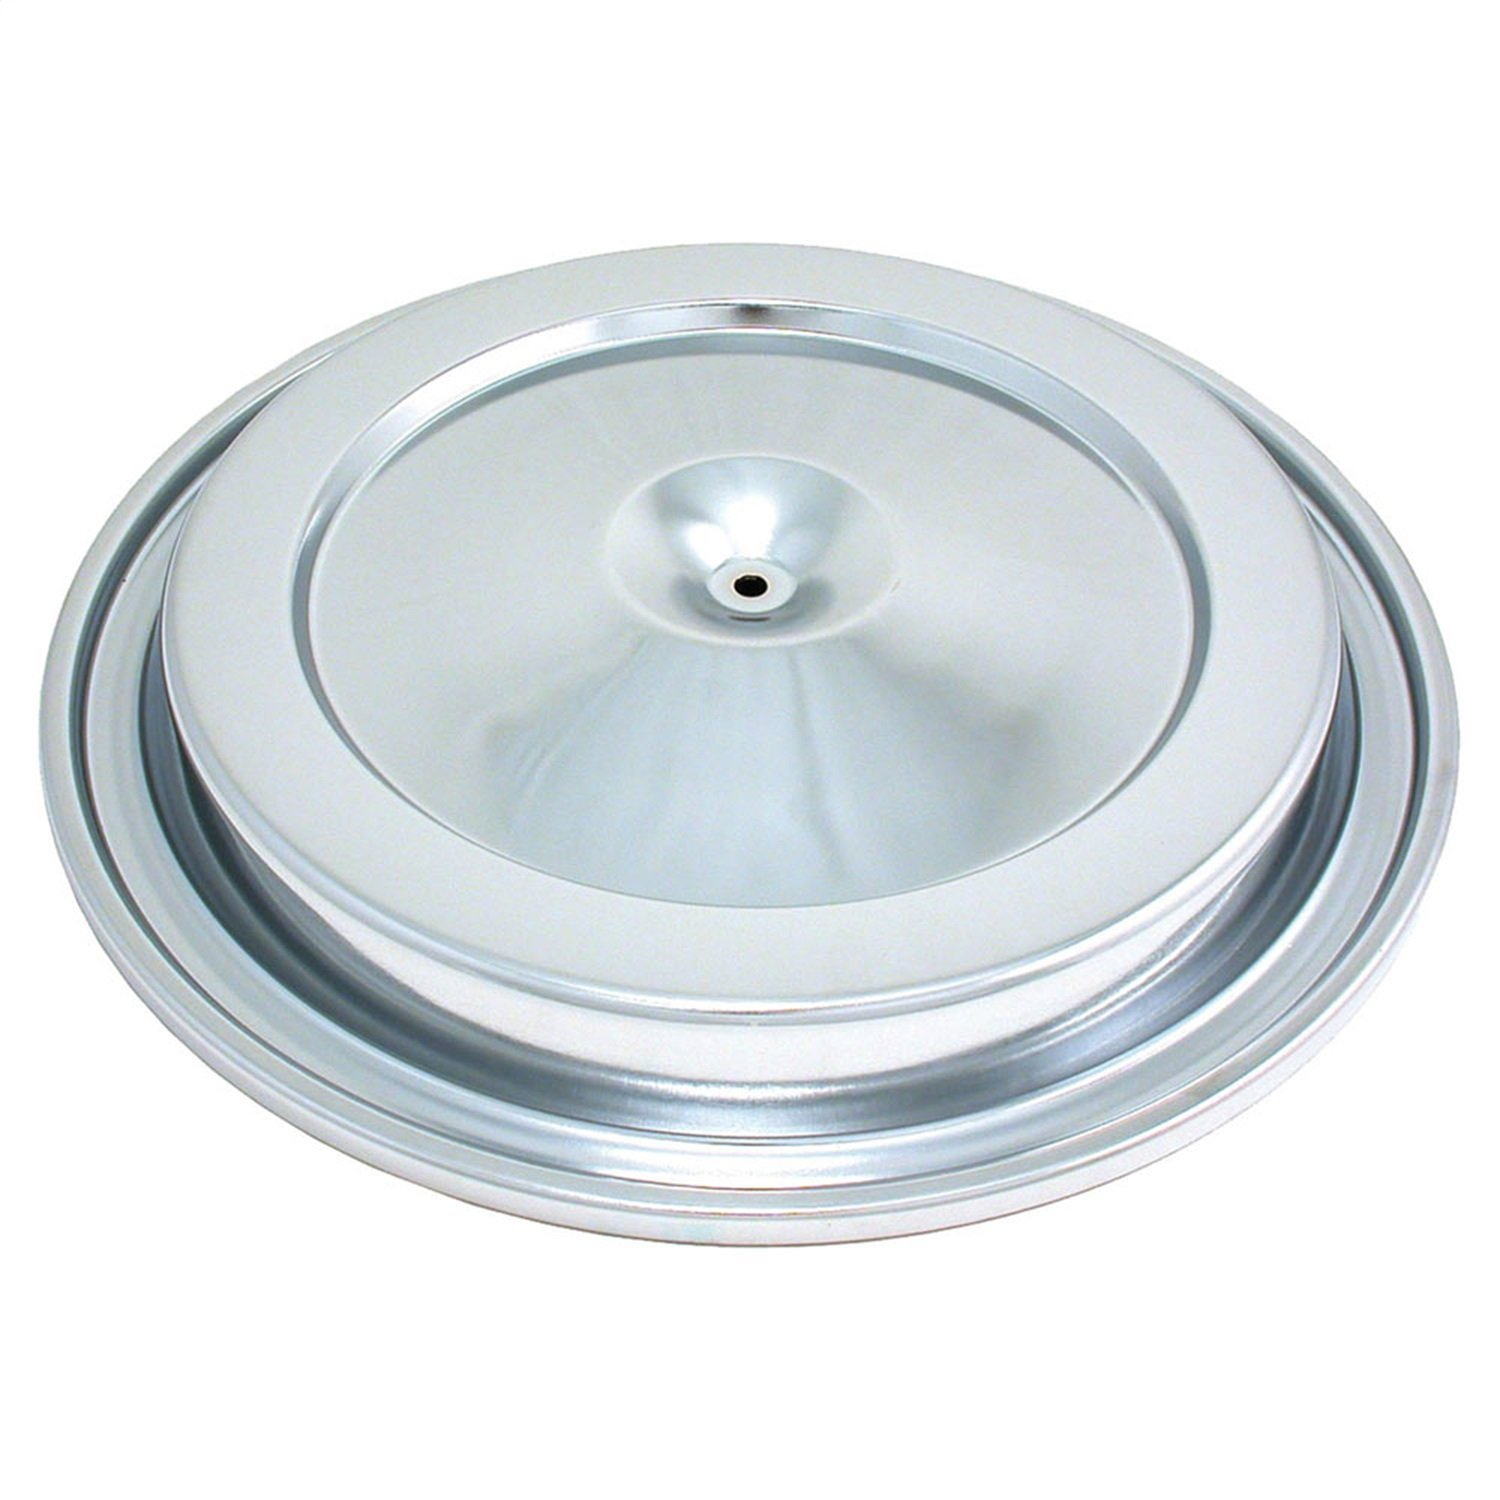 Amazon.com: Spectre Performance 4928 Air Cleaner Top for Chevy/GMC: Automotive